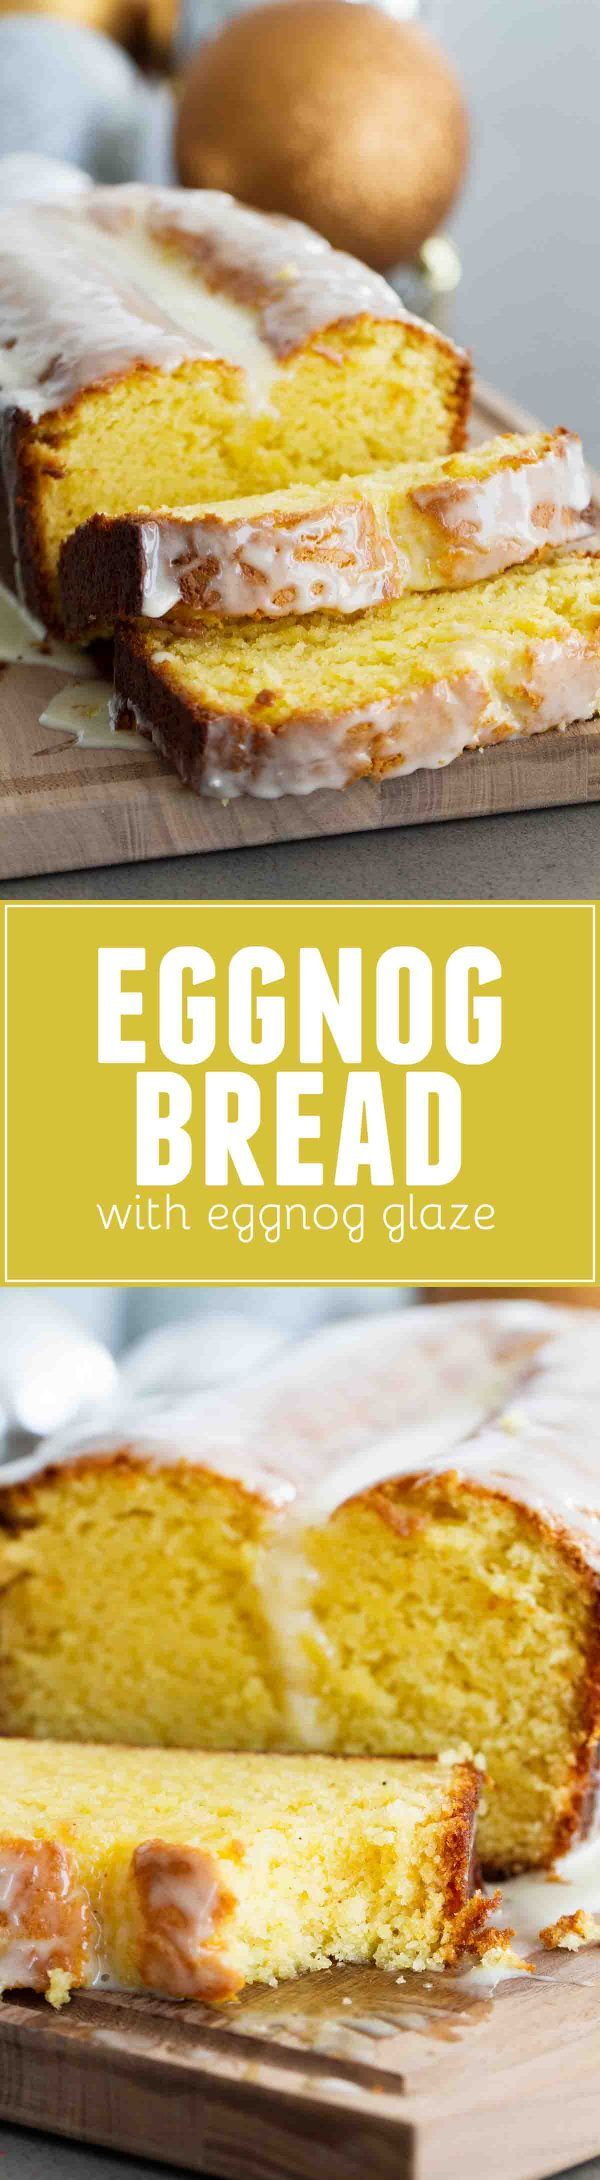 Eggnog Bread ~ enjoy eggnog any time of day with this quick bread topped with eggnog glaze...perfect for breakfast, snack time or dessert!